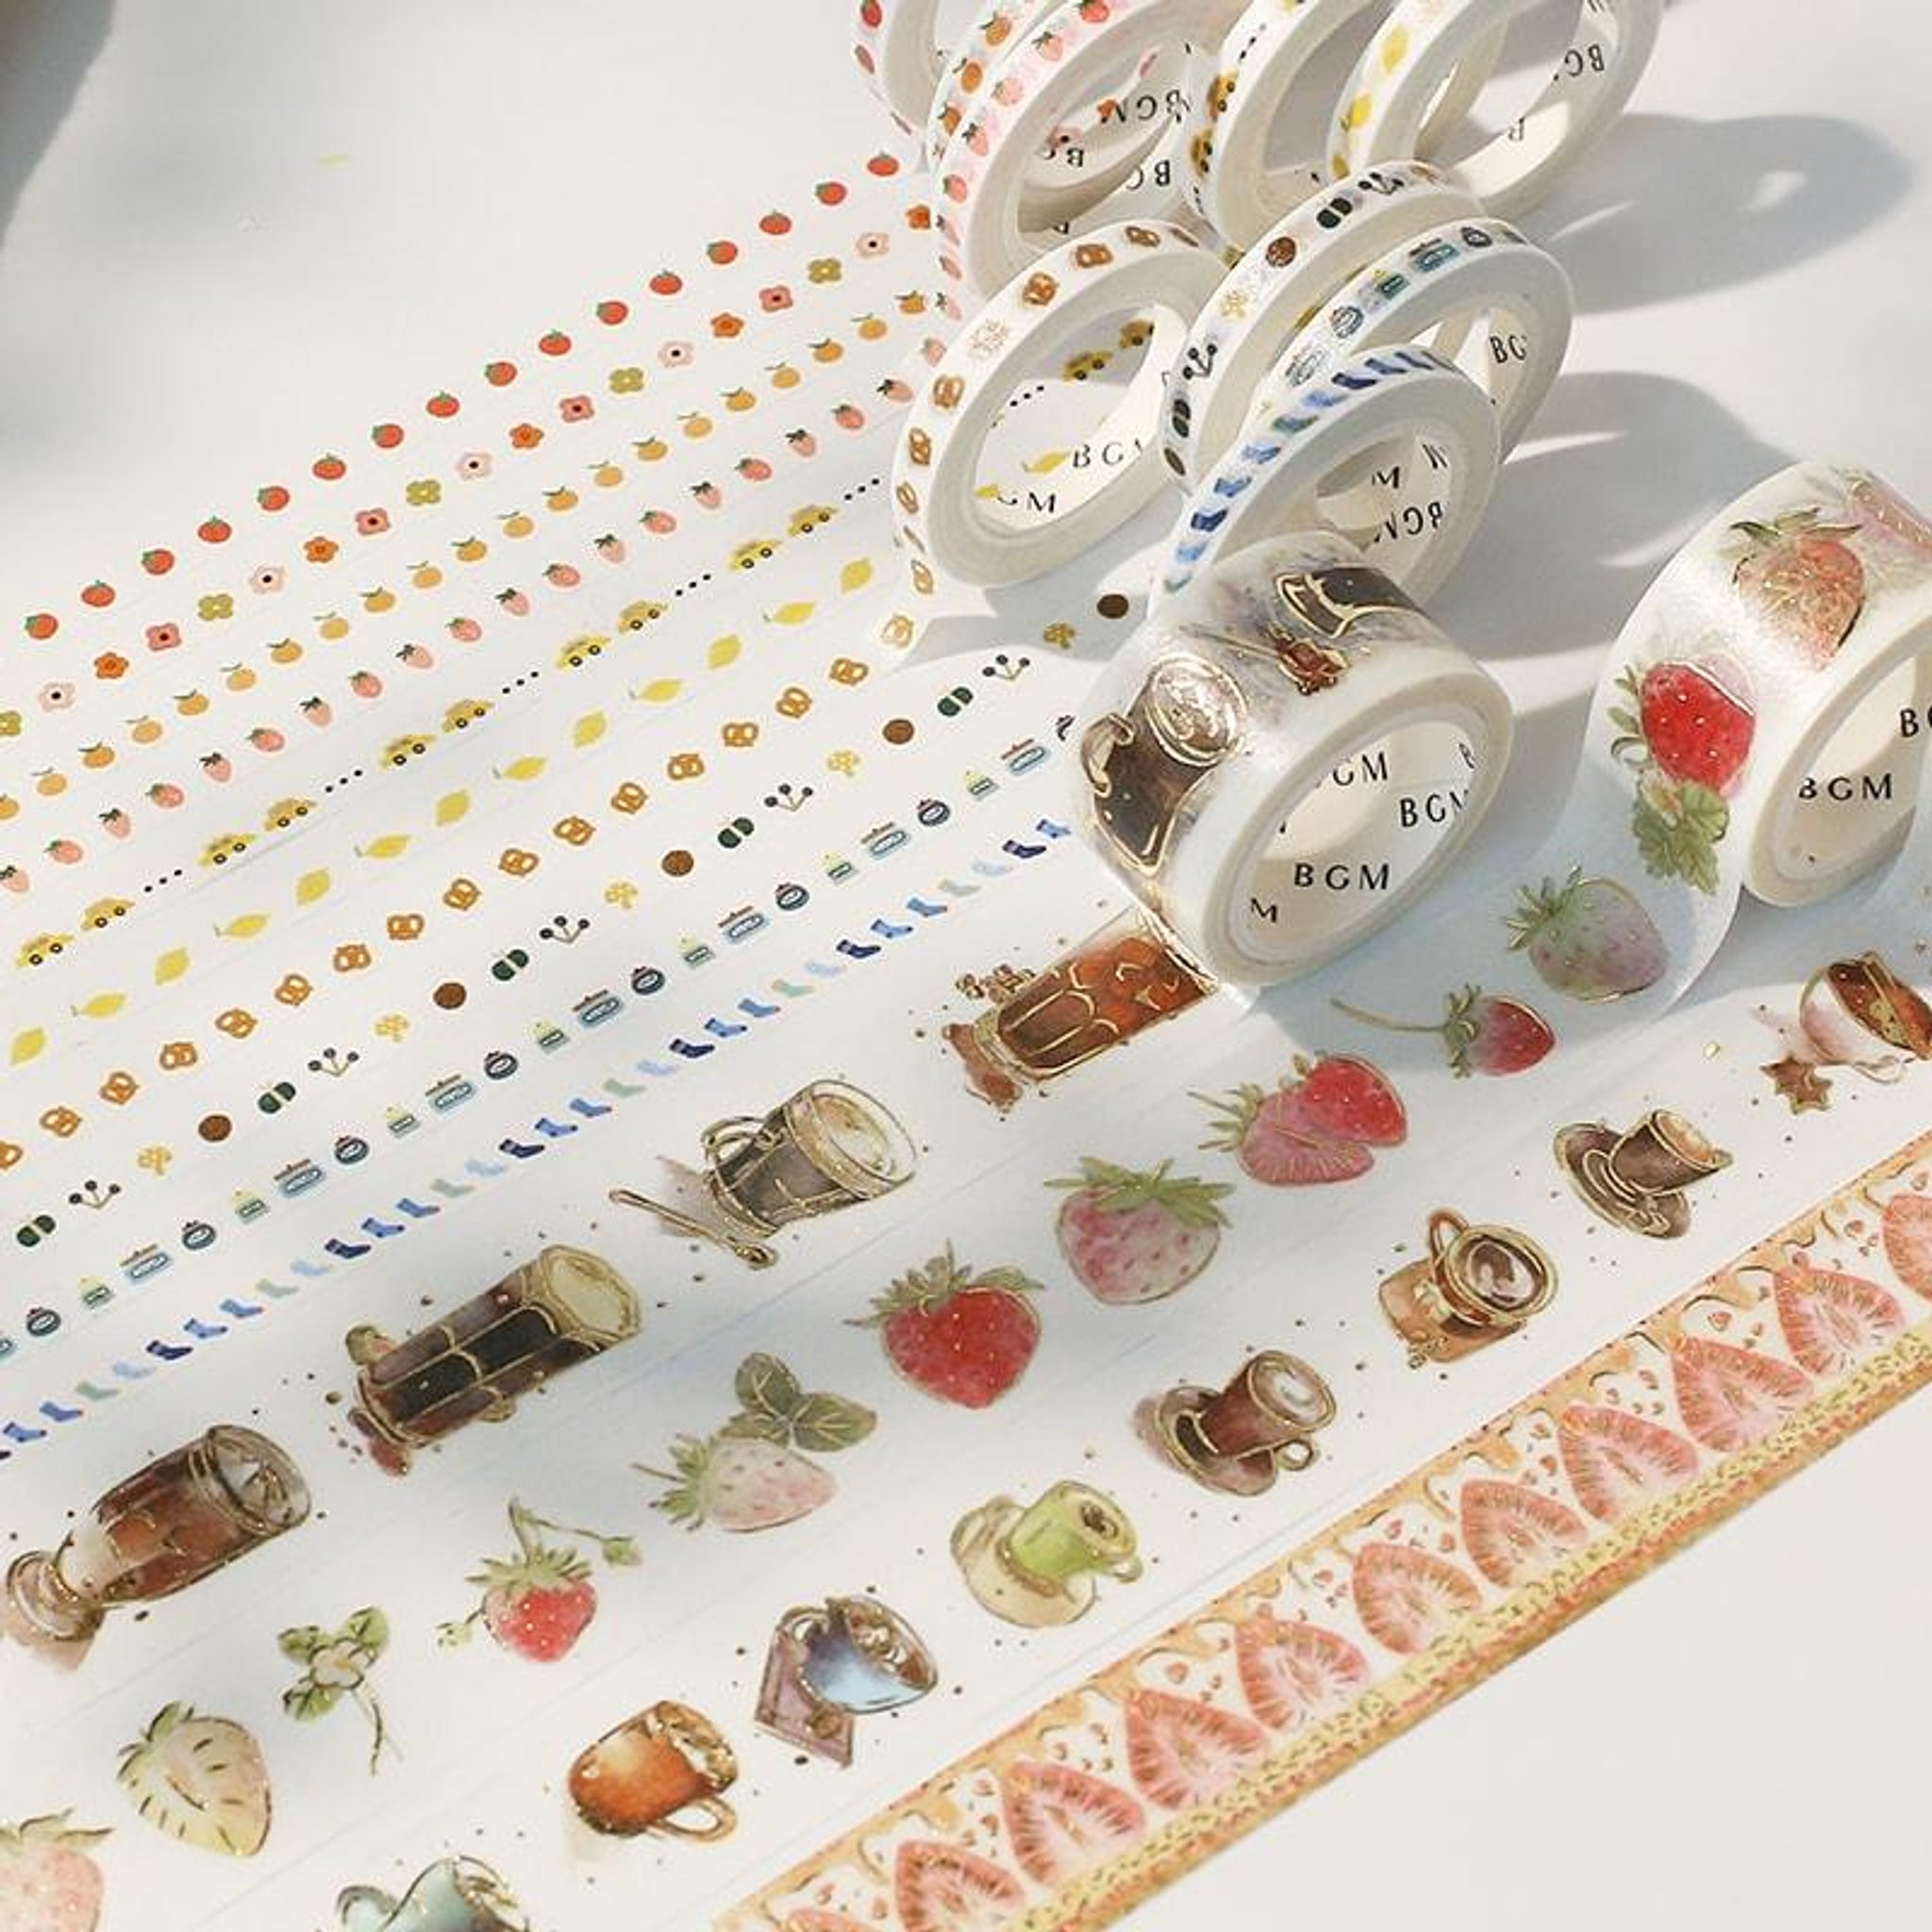 BGM Socks Washi Tape